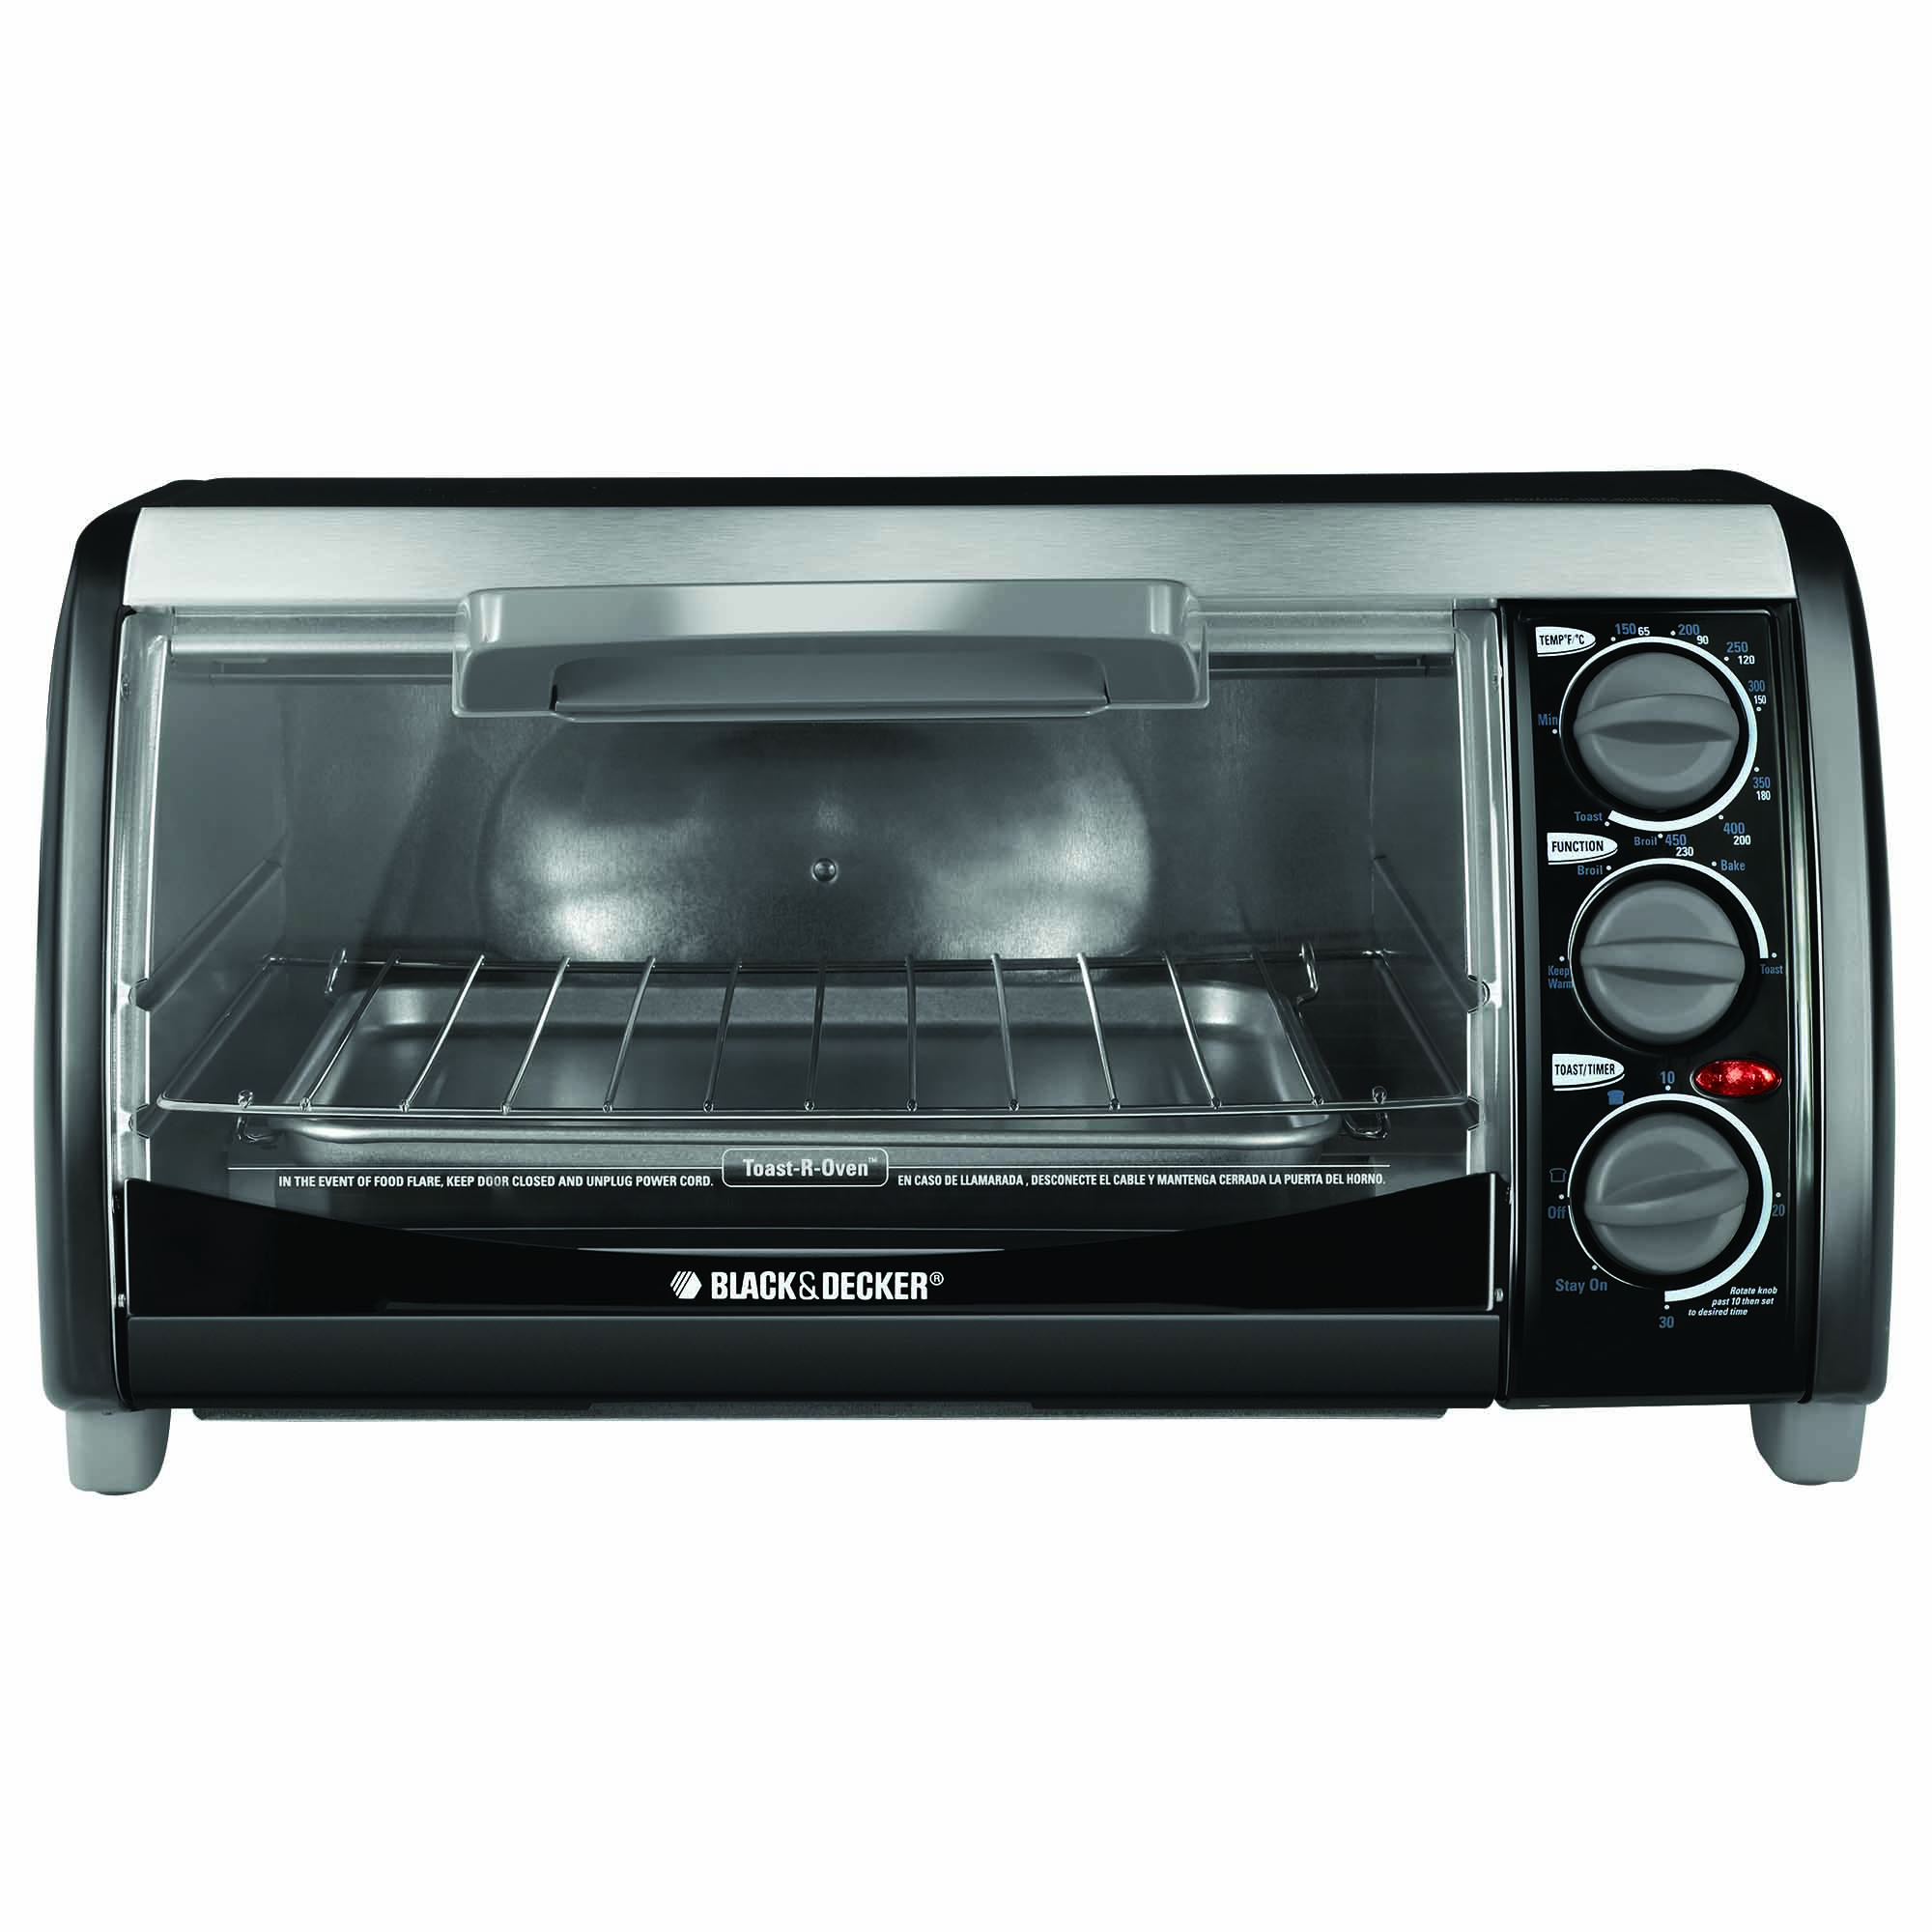 Buy a BLACK+DECKER Toaster Oven | Counter Top Toaster Oven TRO490B ...